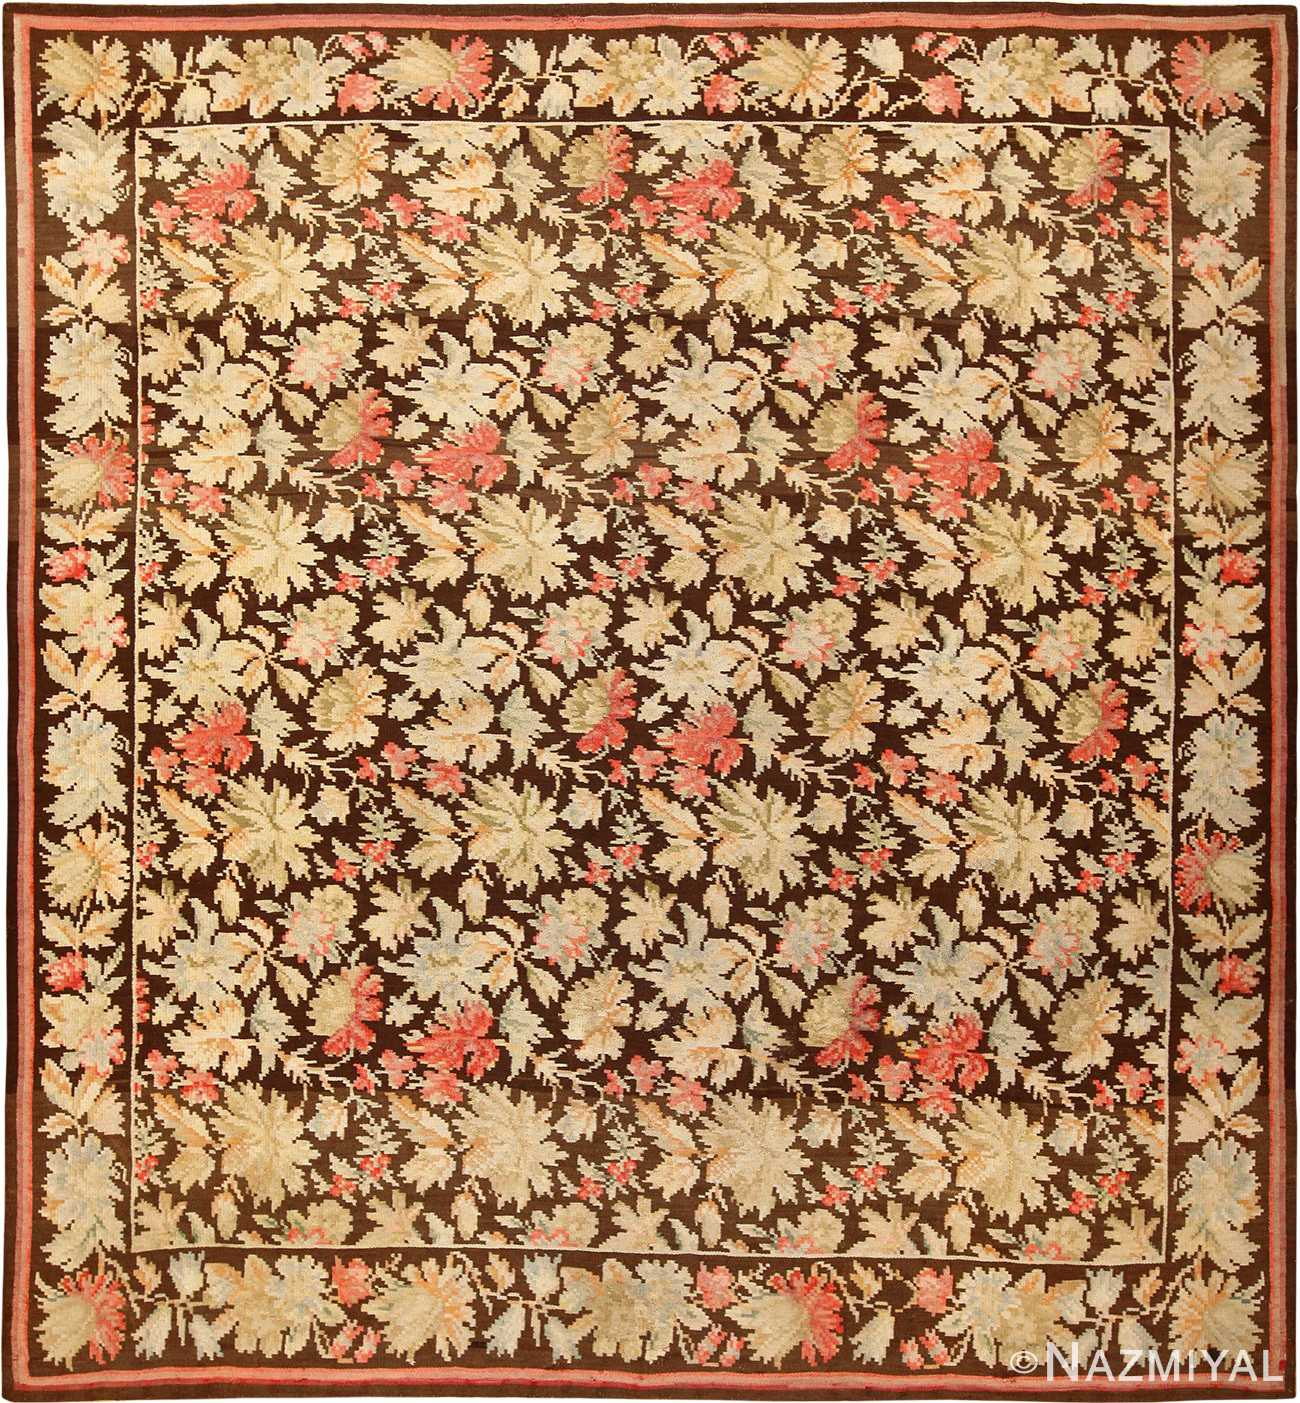 antique romanian bessarabian rug 49298 Nazmiyal